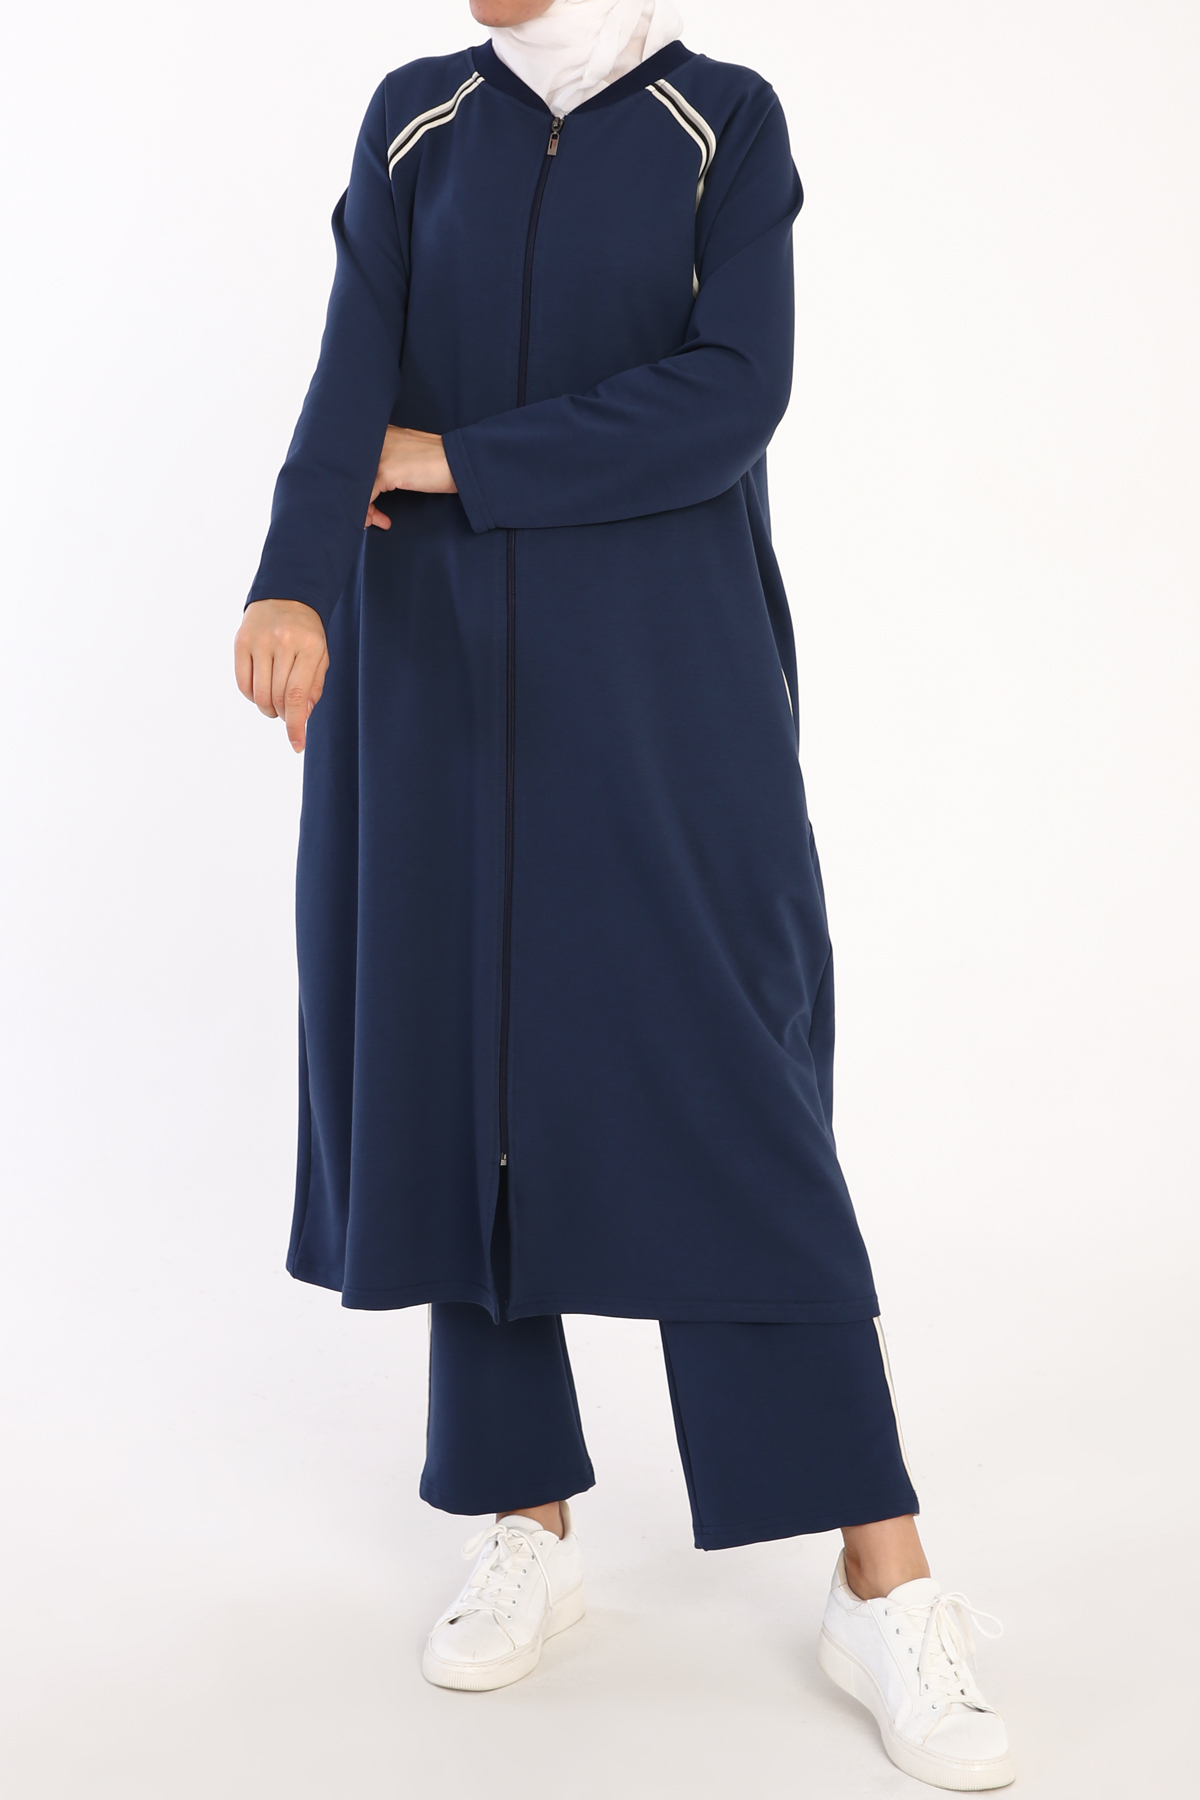 Pockets Zippered Plus Size Track Suit